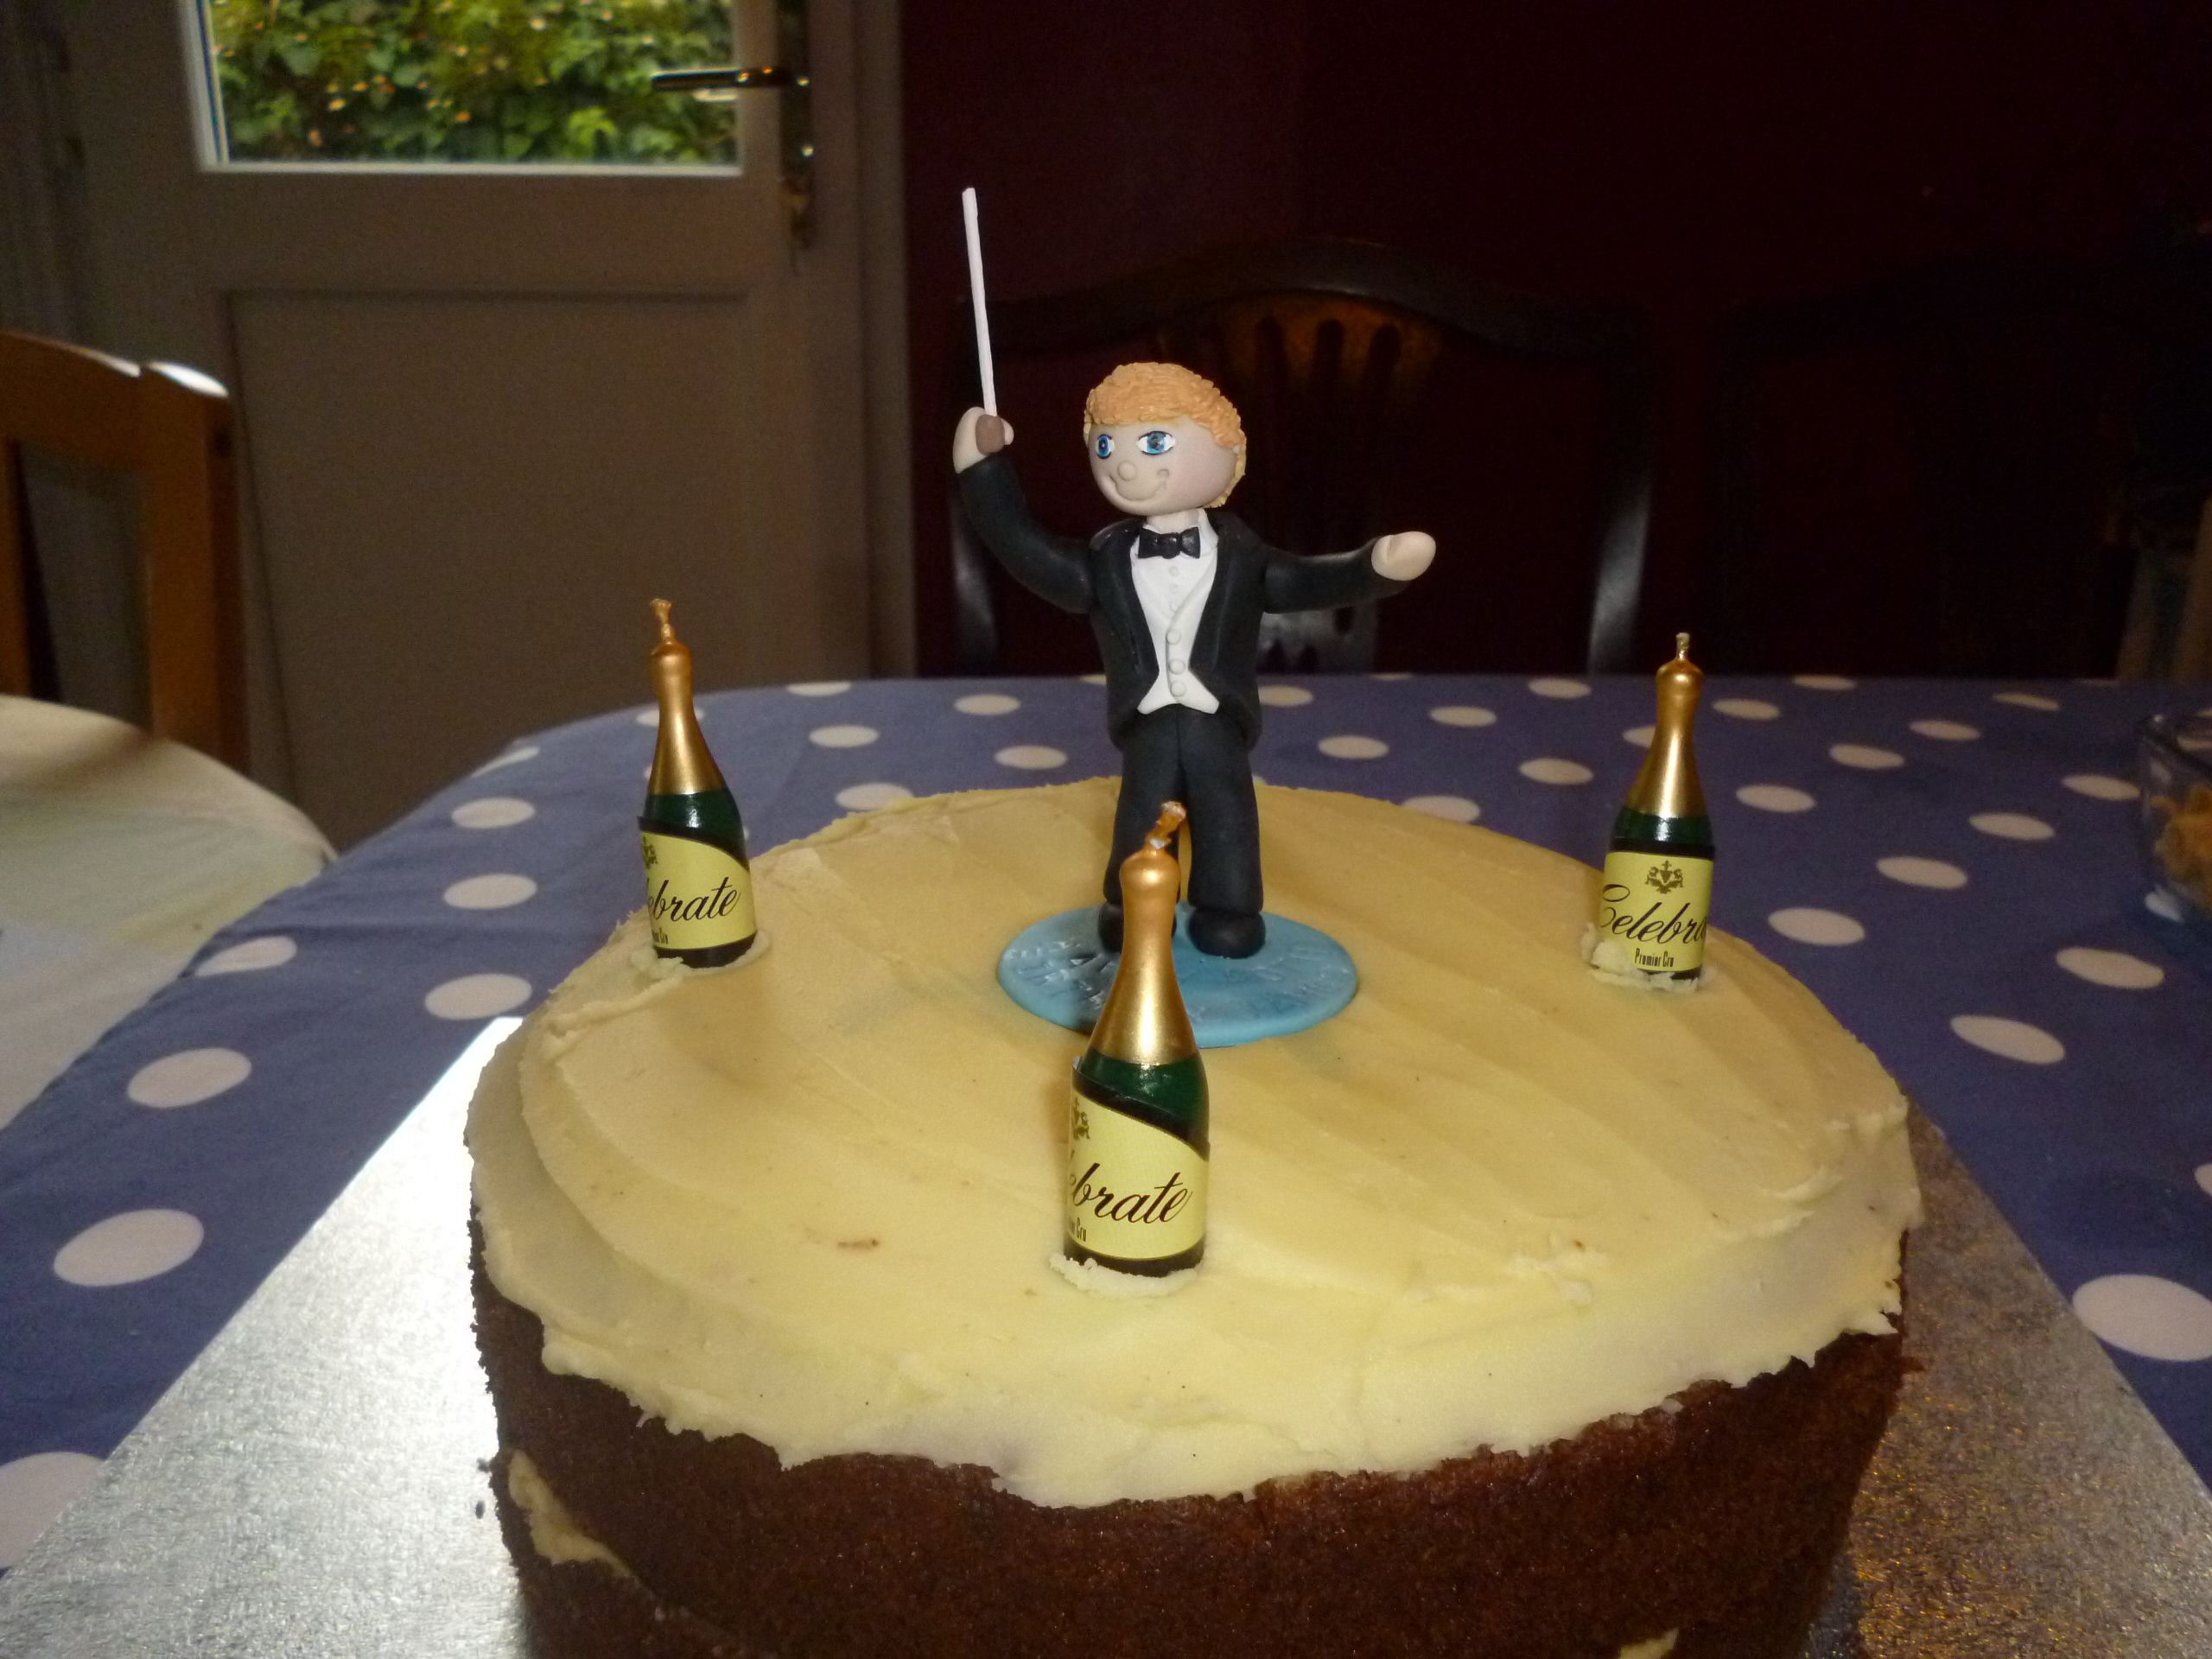 Conductors 40th Birthday cake topper, handcrafted by Ama Aqua Cake ...